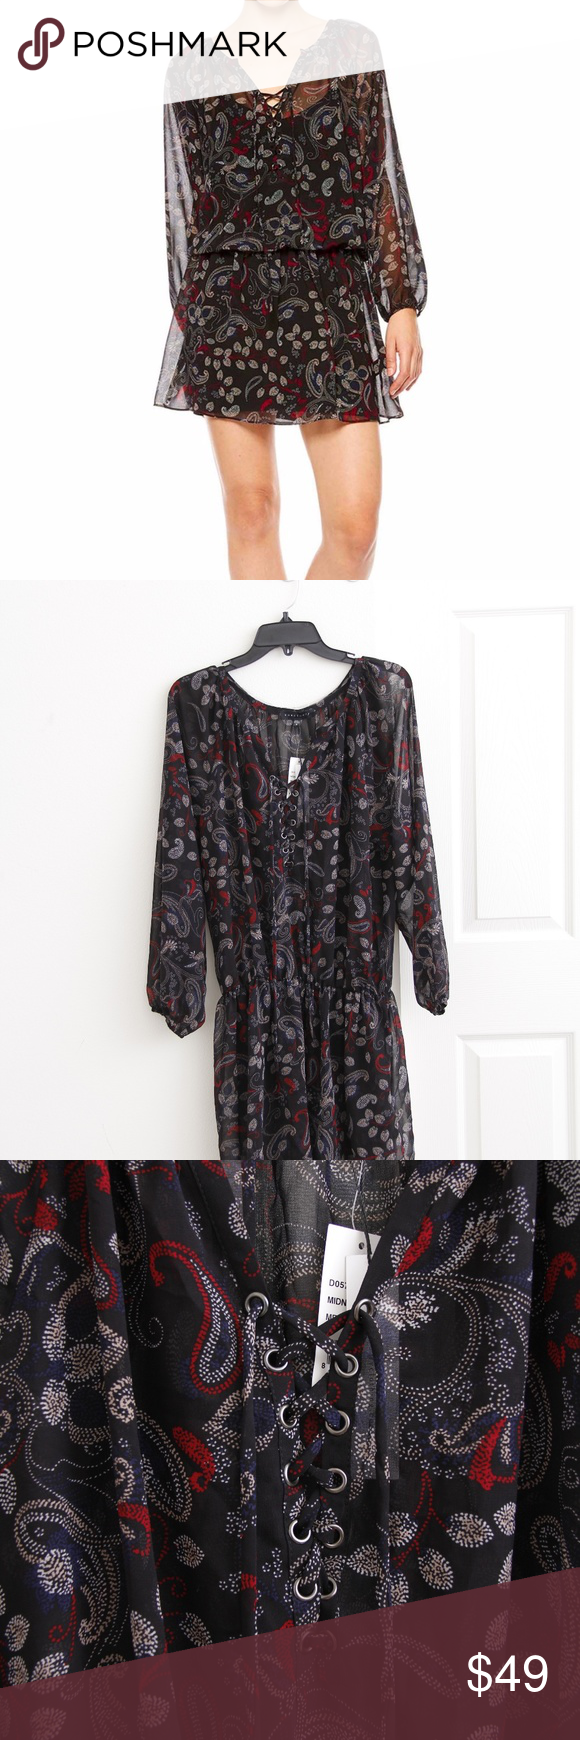 Sanctuary Cachet Boho Dress MIDNIGHT PAISLEY.  Split neck with lace-up ties. Long sleeves with elasticized cuffs. Black Stretch lining. 100% polyester.  True to size.XS=0-2, S=4, M=6-8, L=10-12, XL=14.  Condition: Storestock Item. - may have been worn inside a fitting room. - may have been stored for quite some time.  #37 Sanctuary Dresses Mini